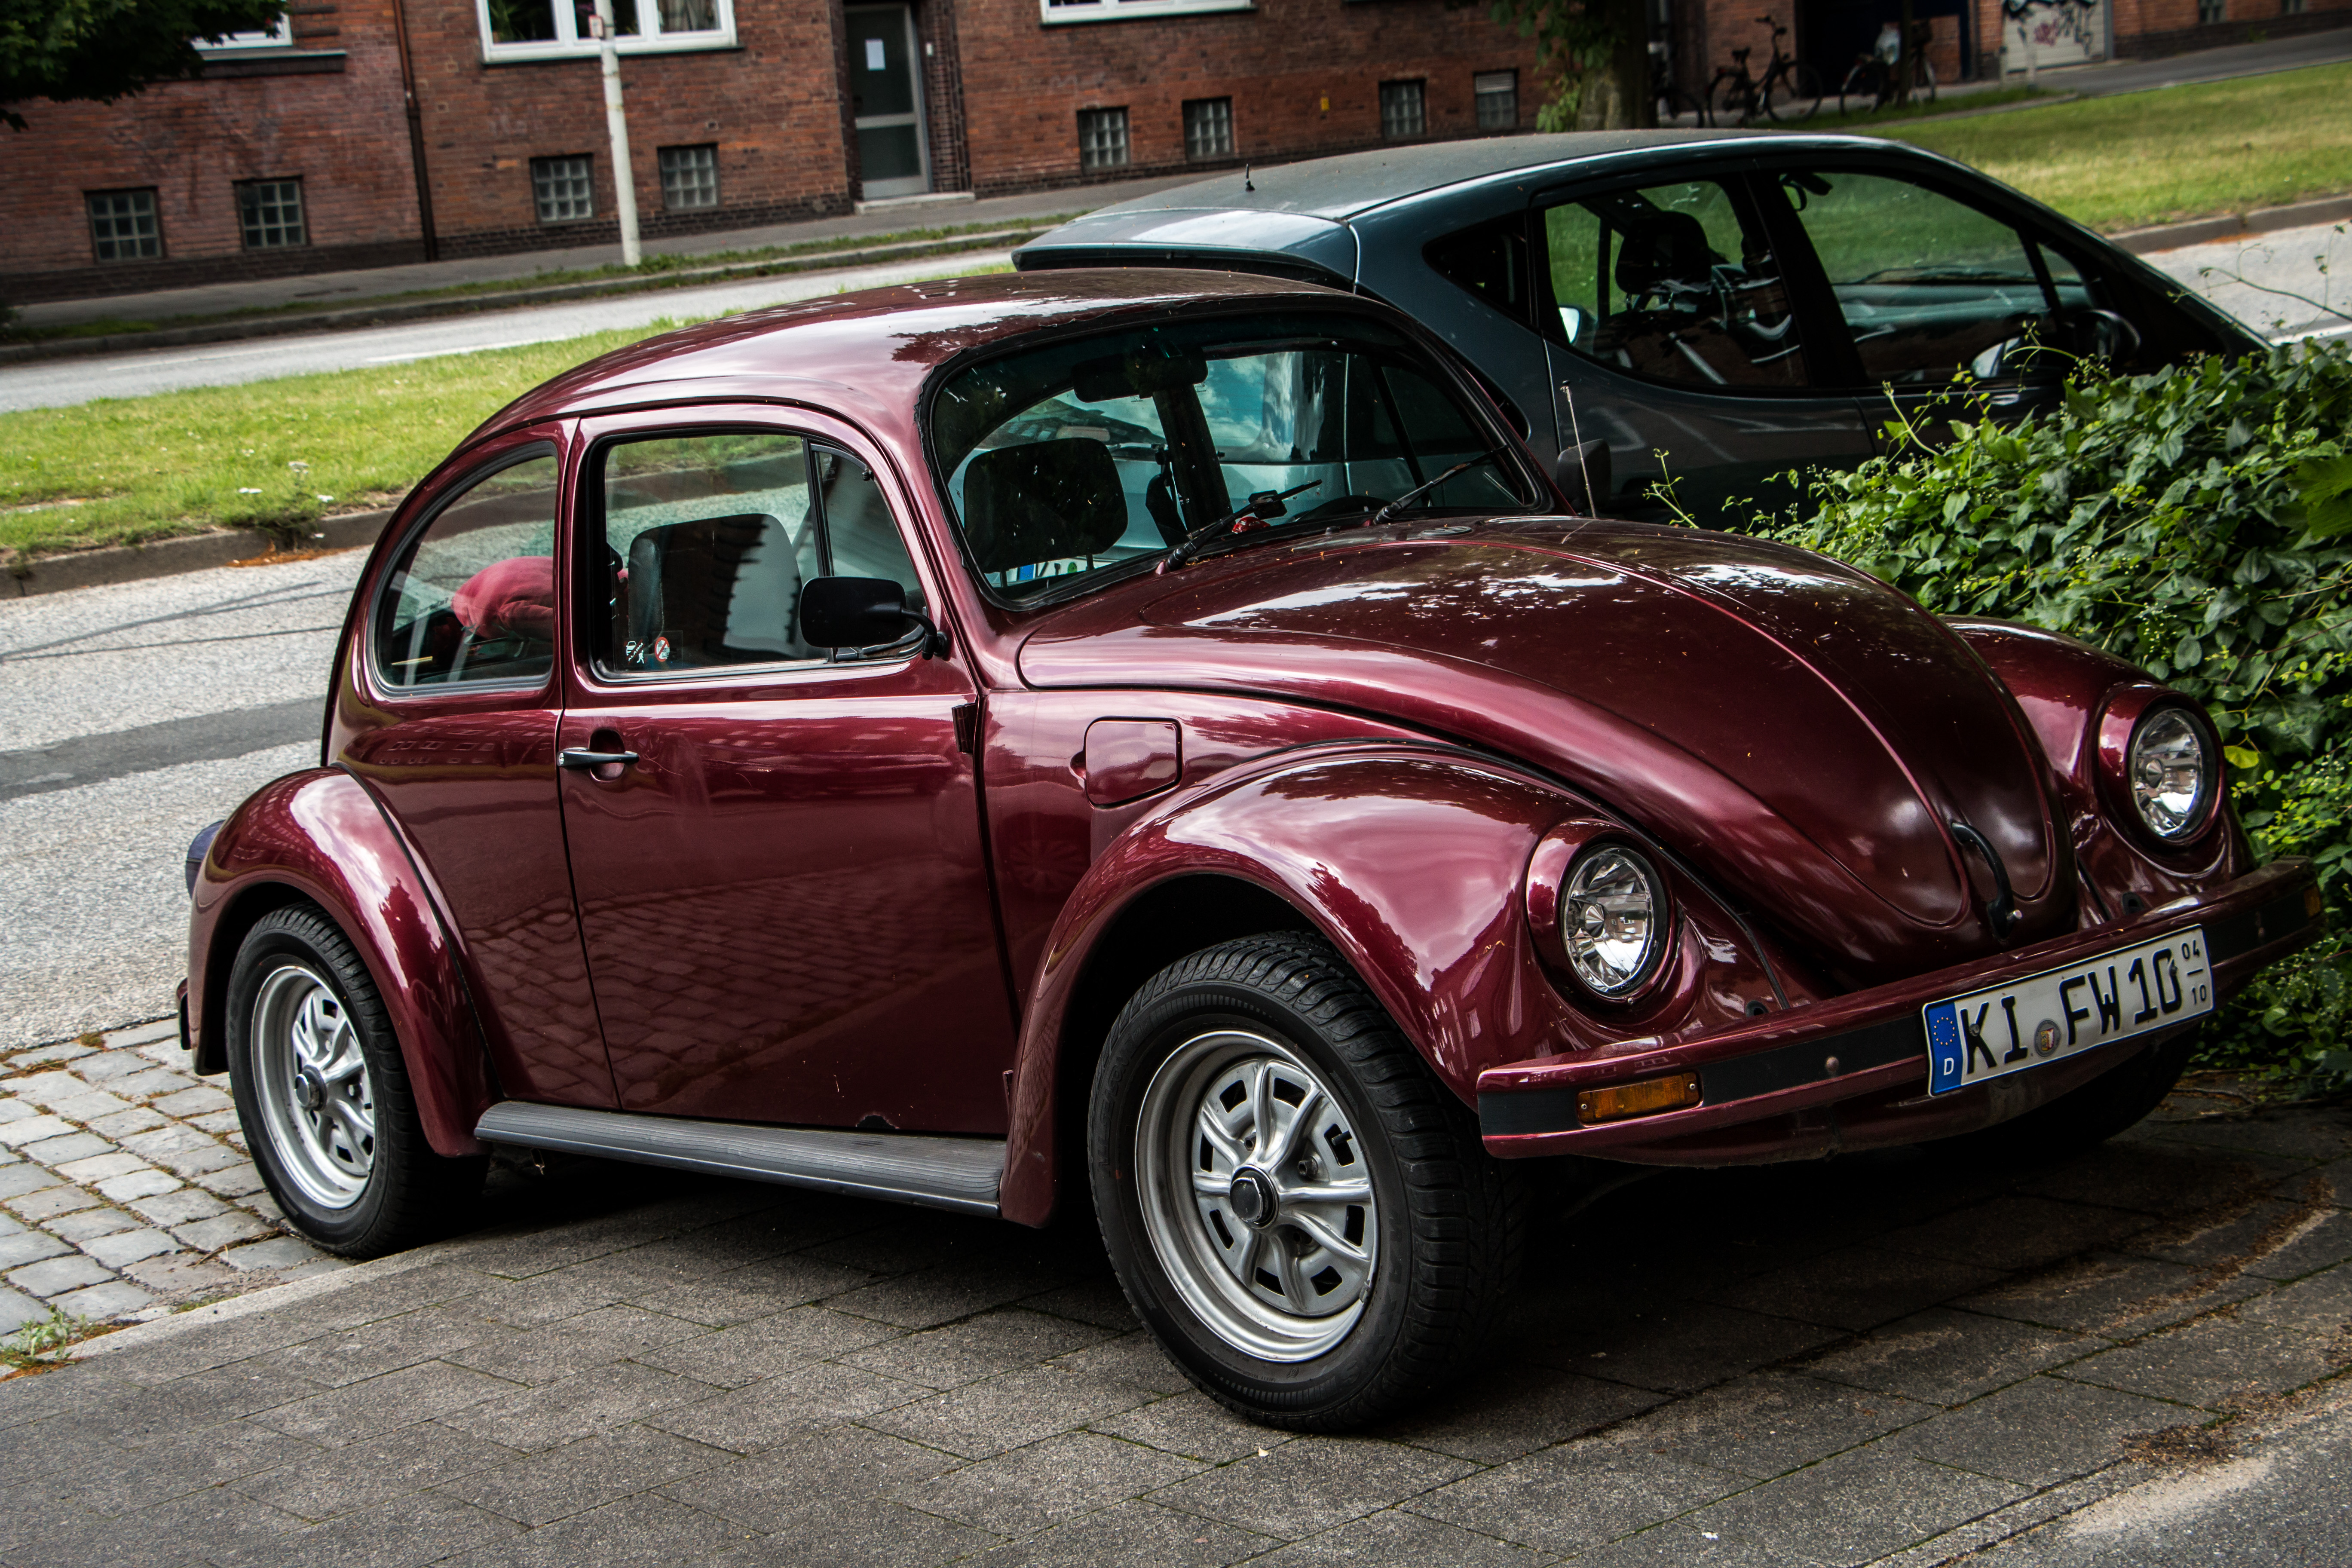 Old Volkswagen, Auto, Beautiful, Car, Cherry, HQ Photo